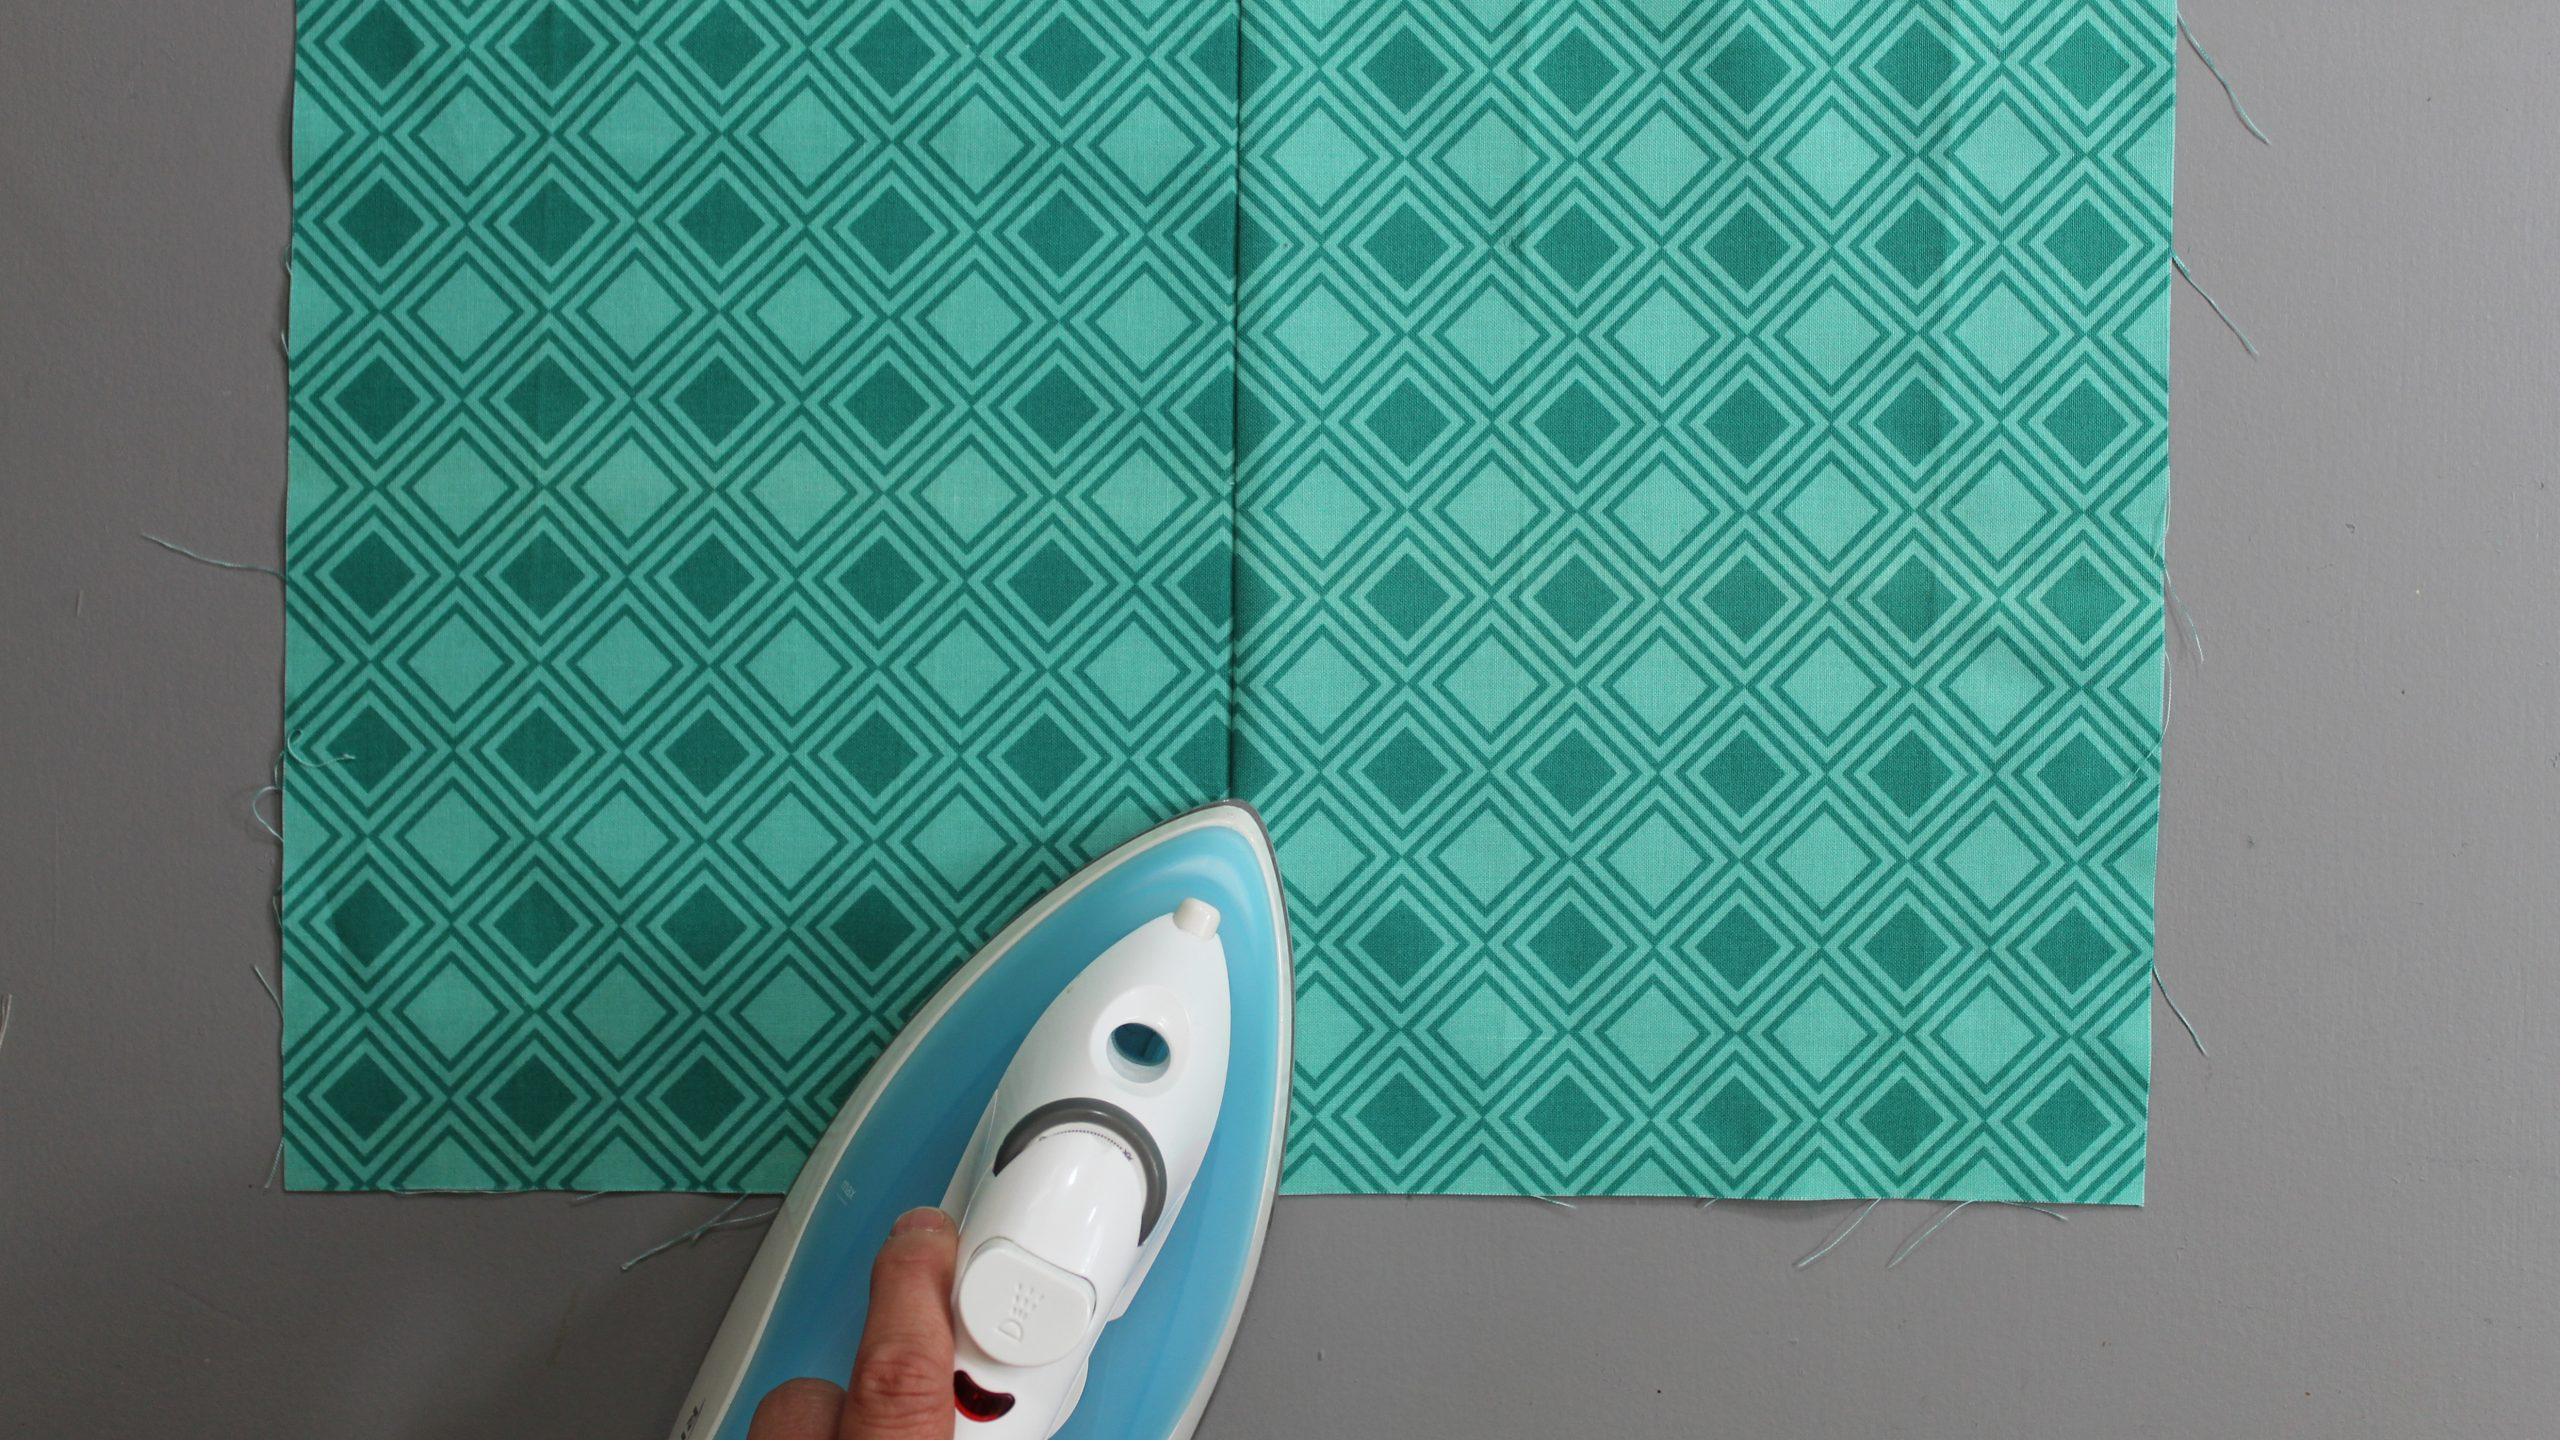 Ironing the other side of the fabric